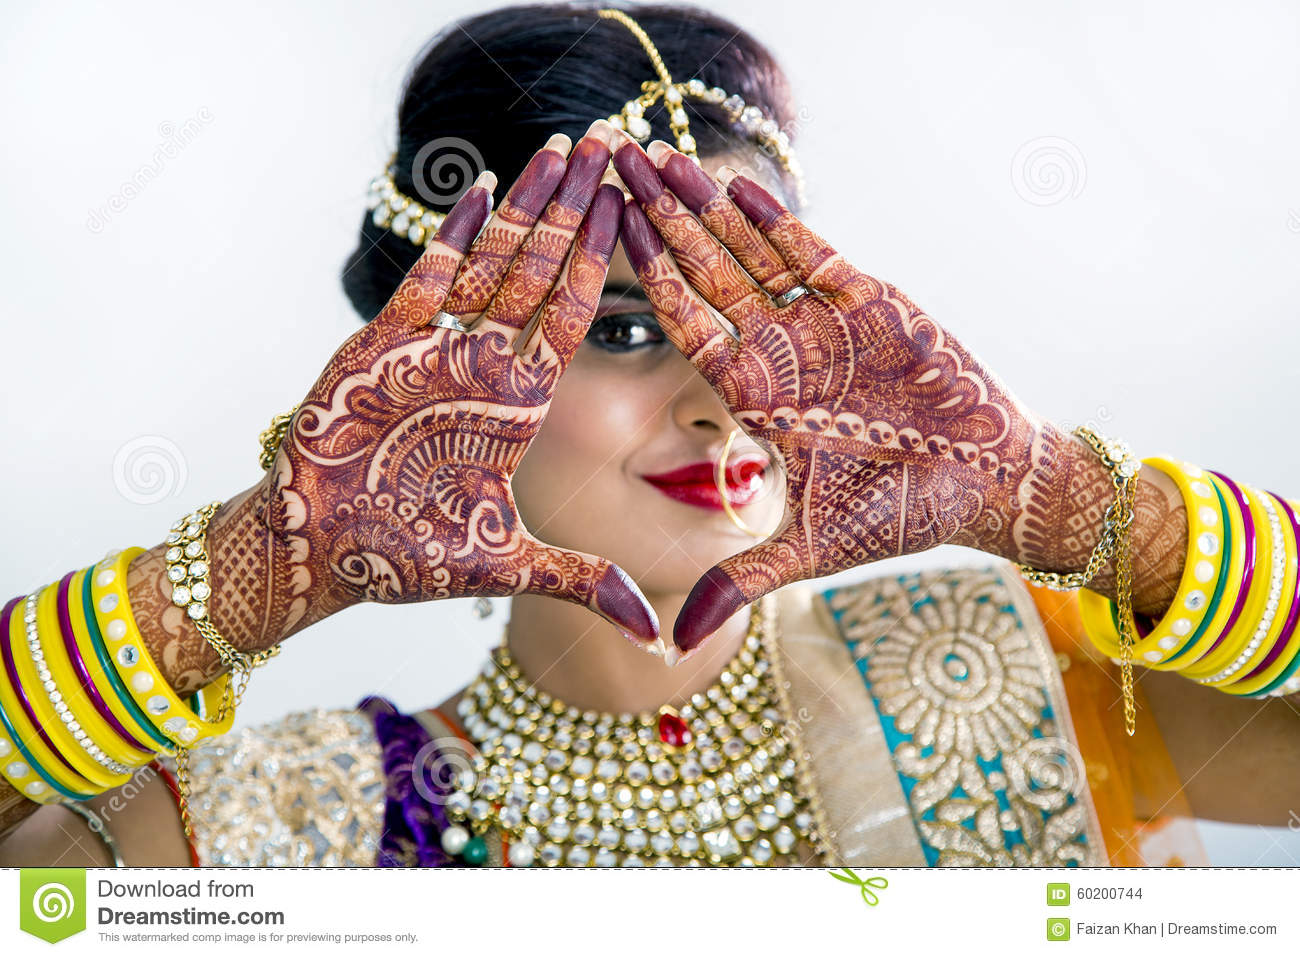 Beuatiful Indian Bride with Mehendi hands or Henna